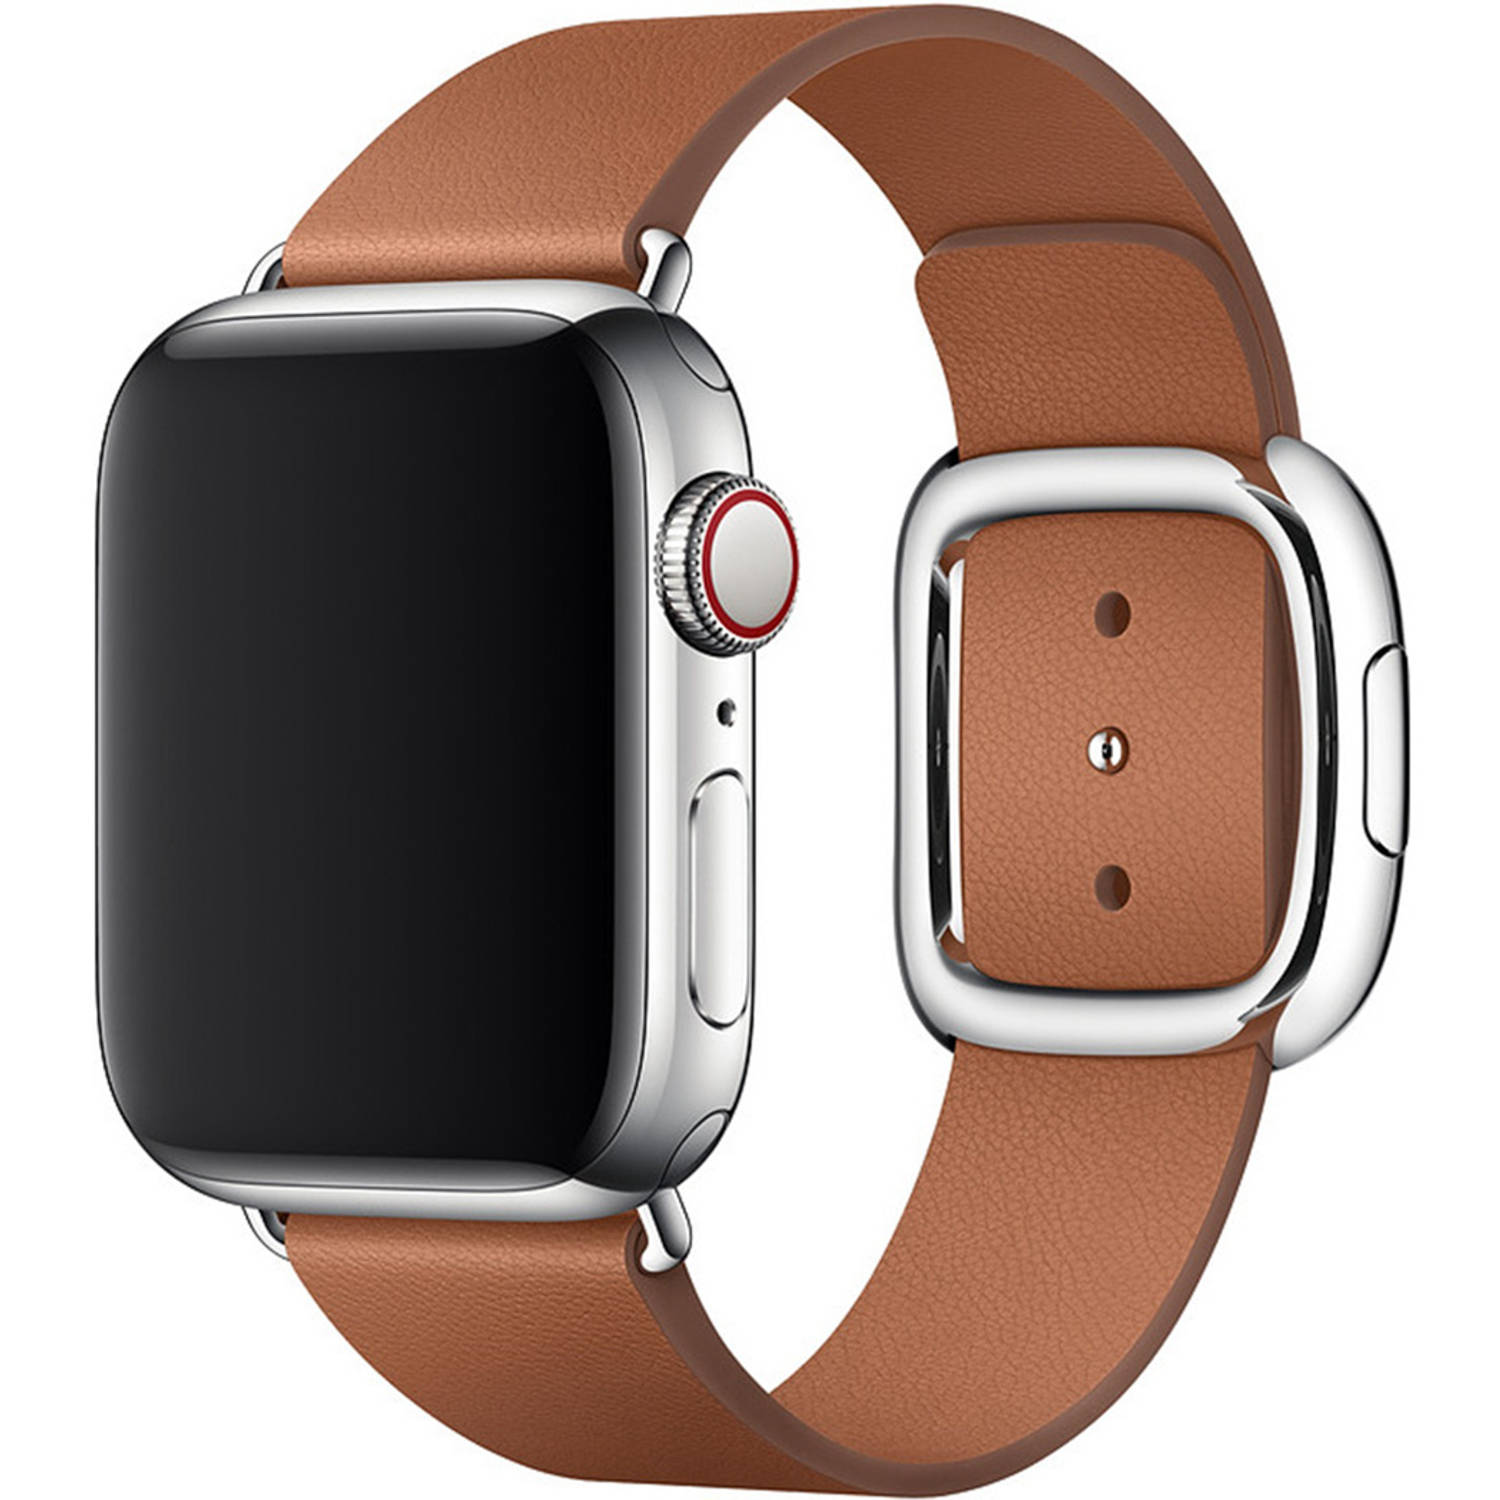 Leather Band Modern Buckle M Voor Apple Watch Series 1 T/m 6 / Se – 38/40mm – Bruin